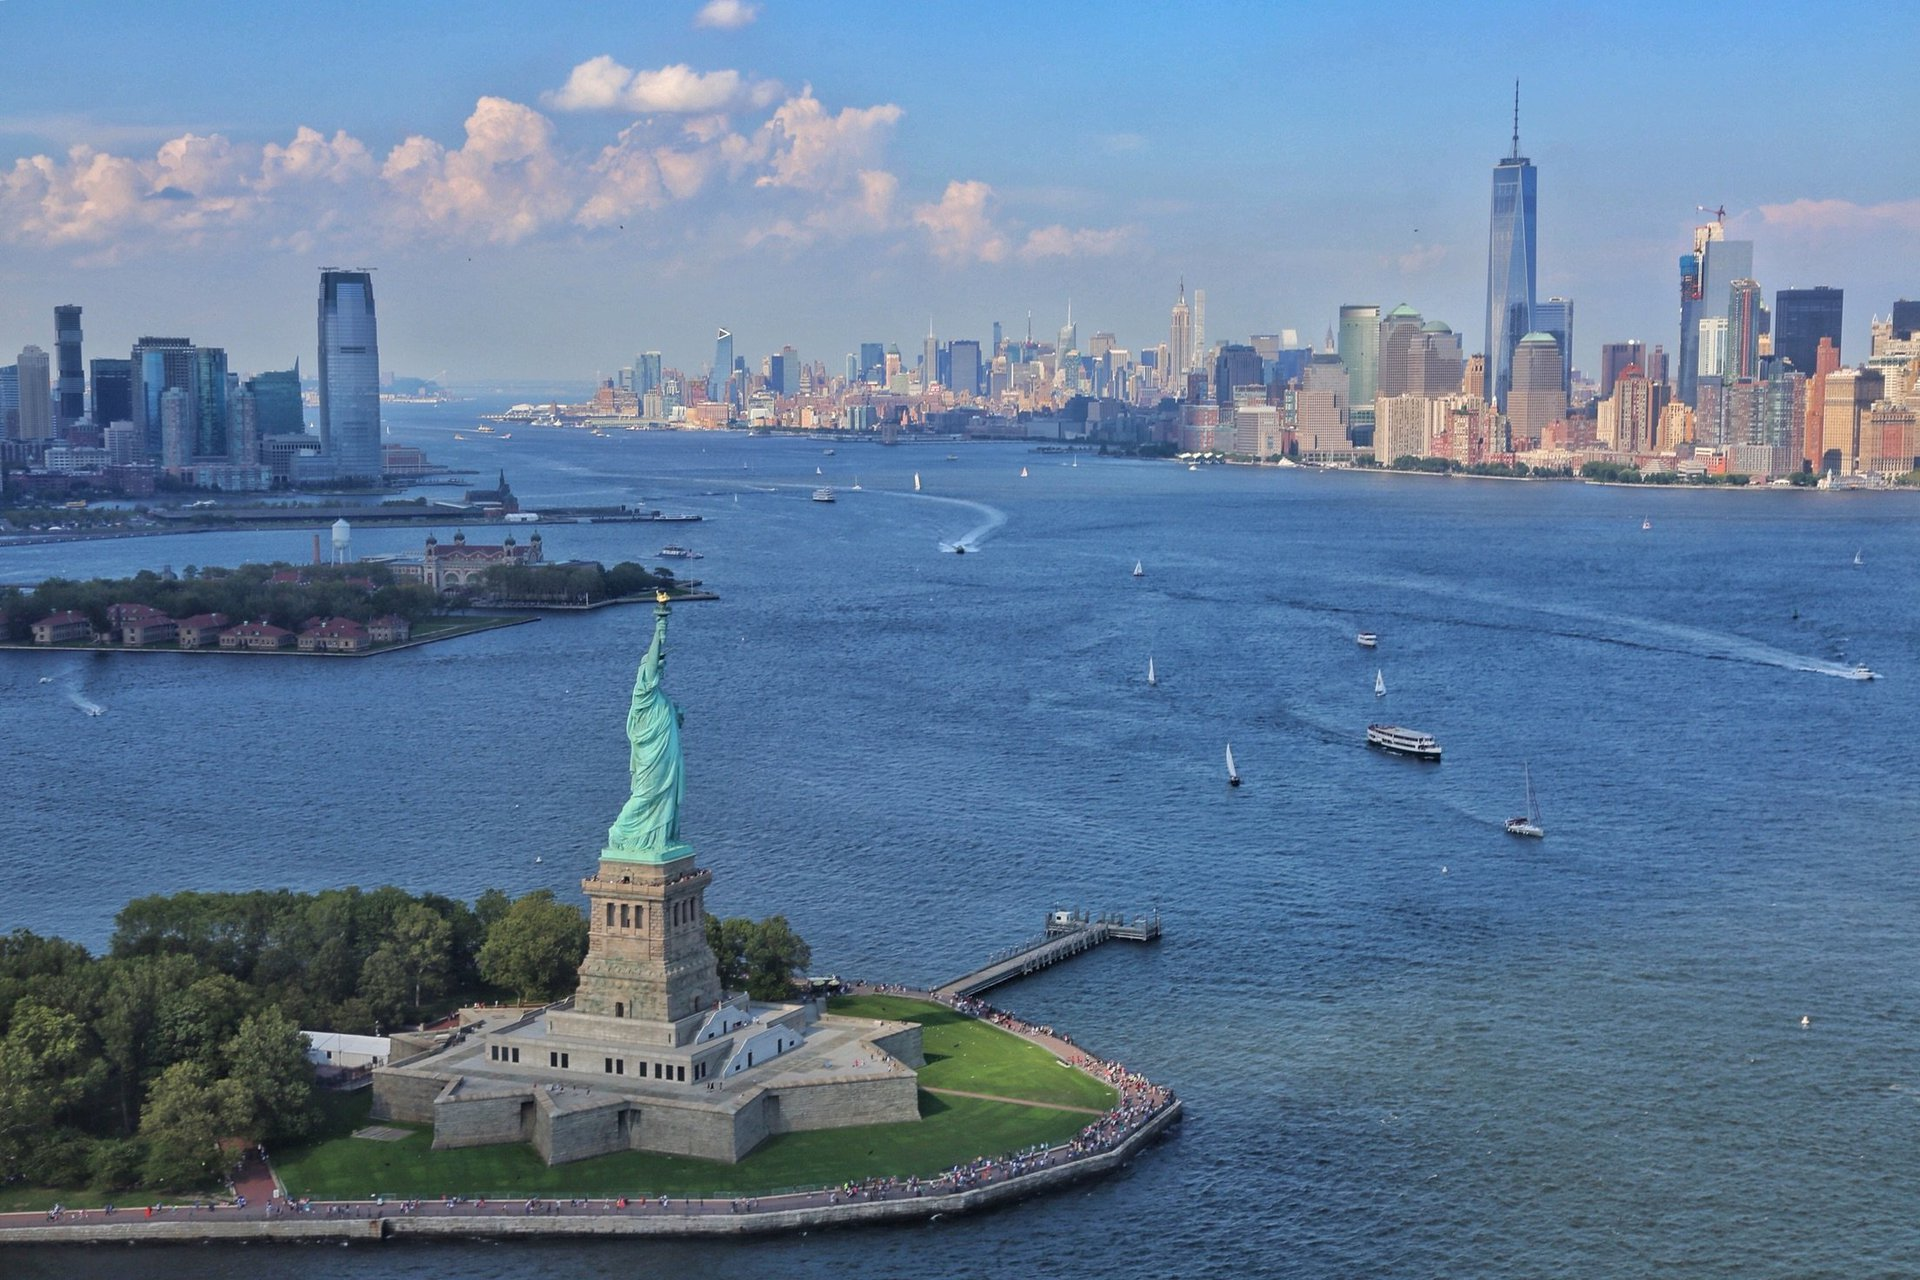 Les Vols En Helicoptere A New York C New York